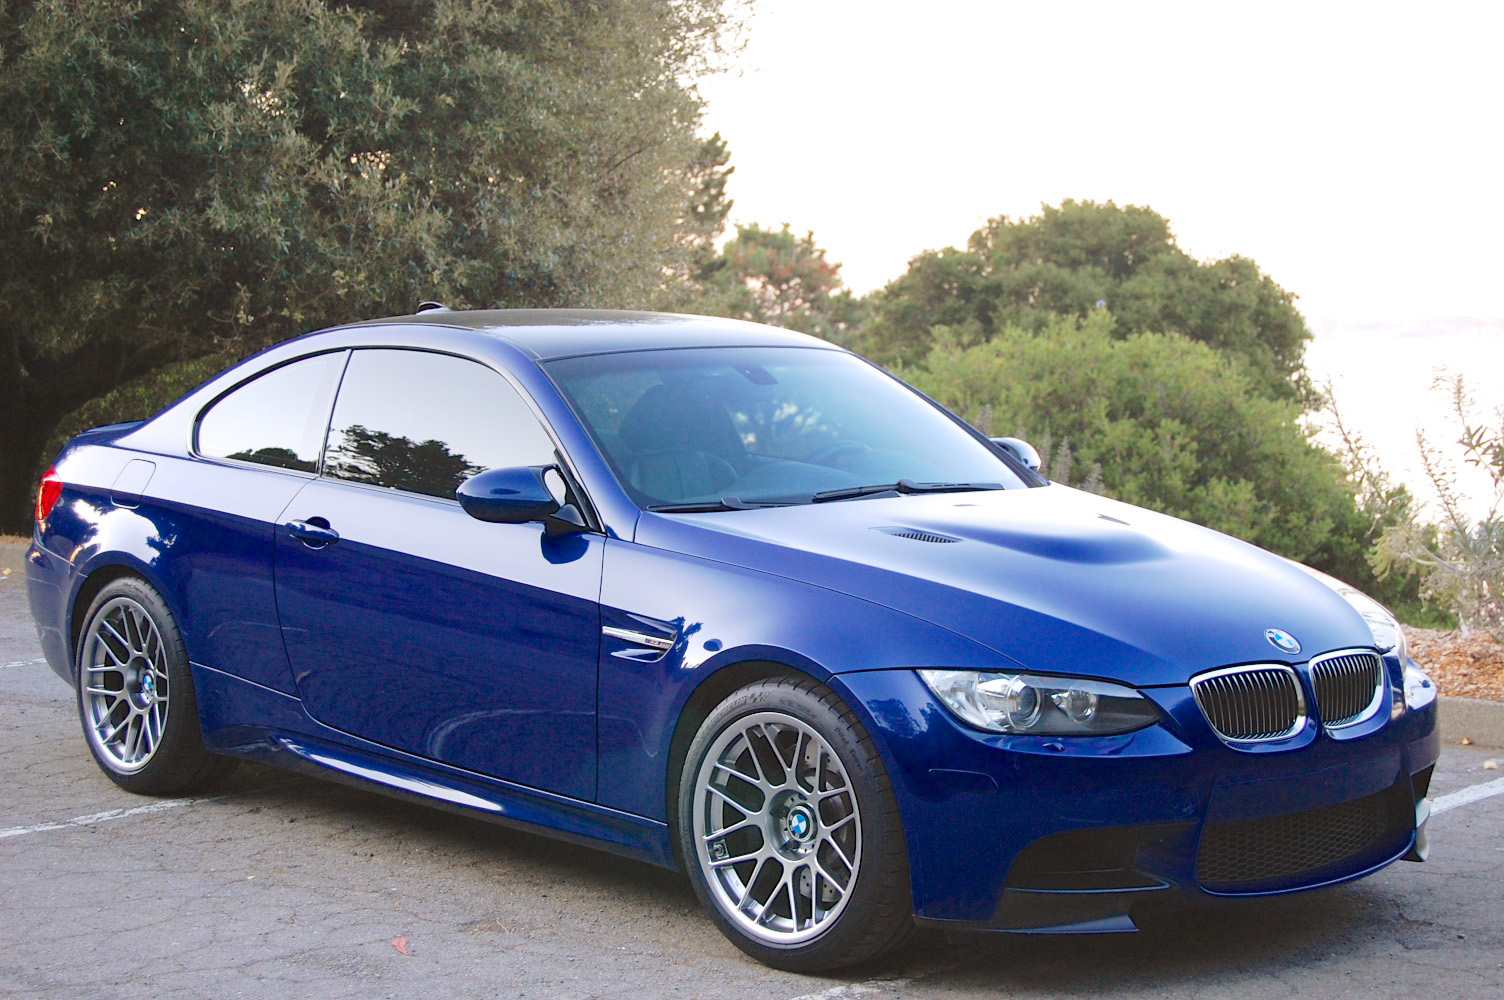 E9x M3 Wheel Tire Fitment Guide Apex Race Parts